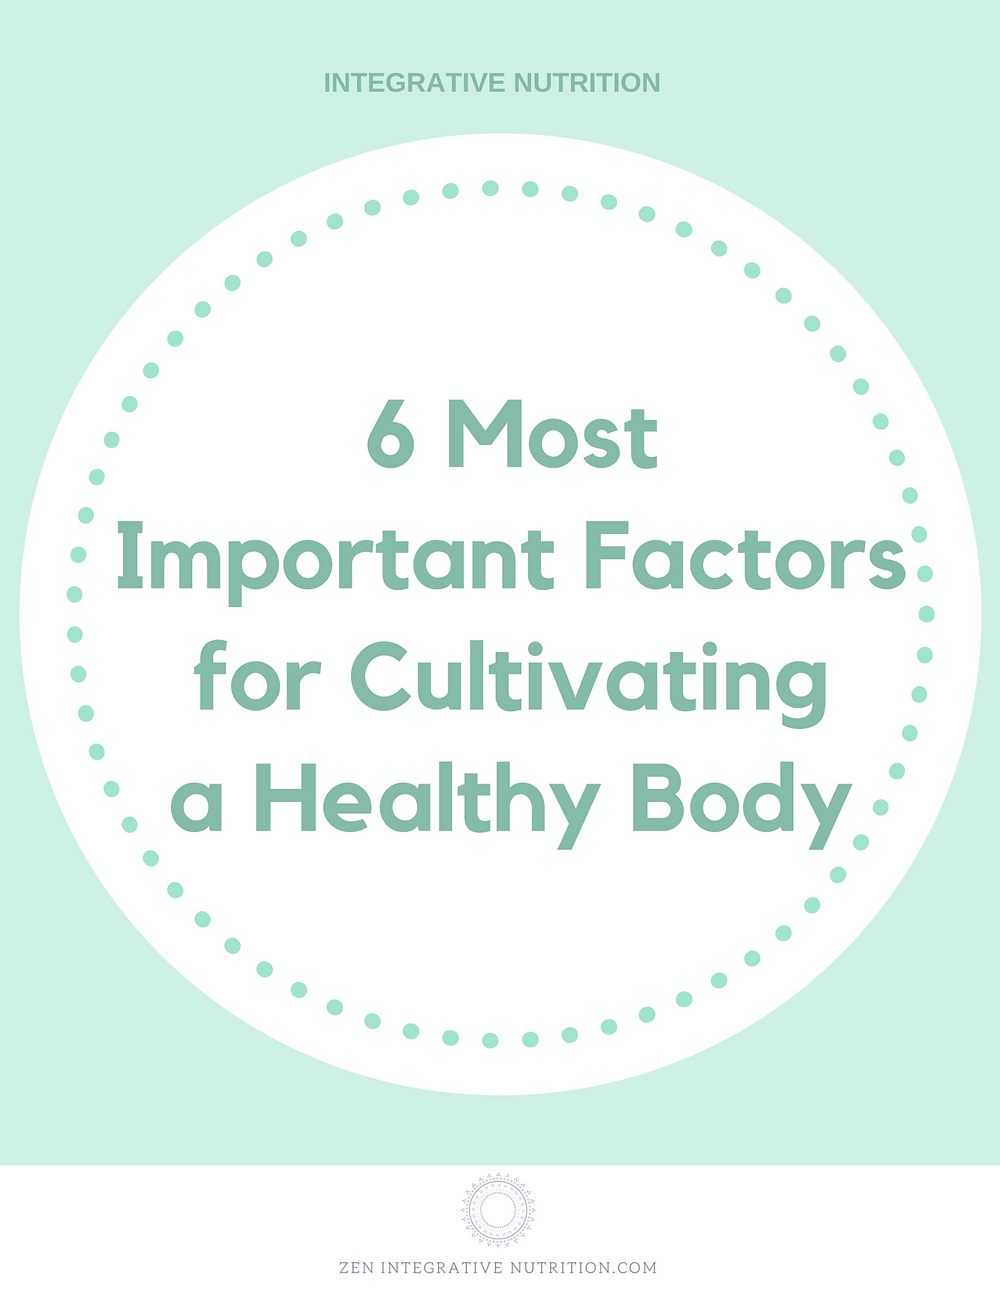 Integrative Nutrition: 6 Most Important Factors to Cultivate a Healthy Body l ZEN Integrative Nutrition & Health l Online Nutrition Counseling l Miho Hatanaka, RDN